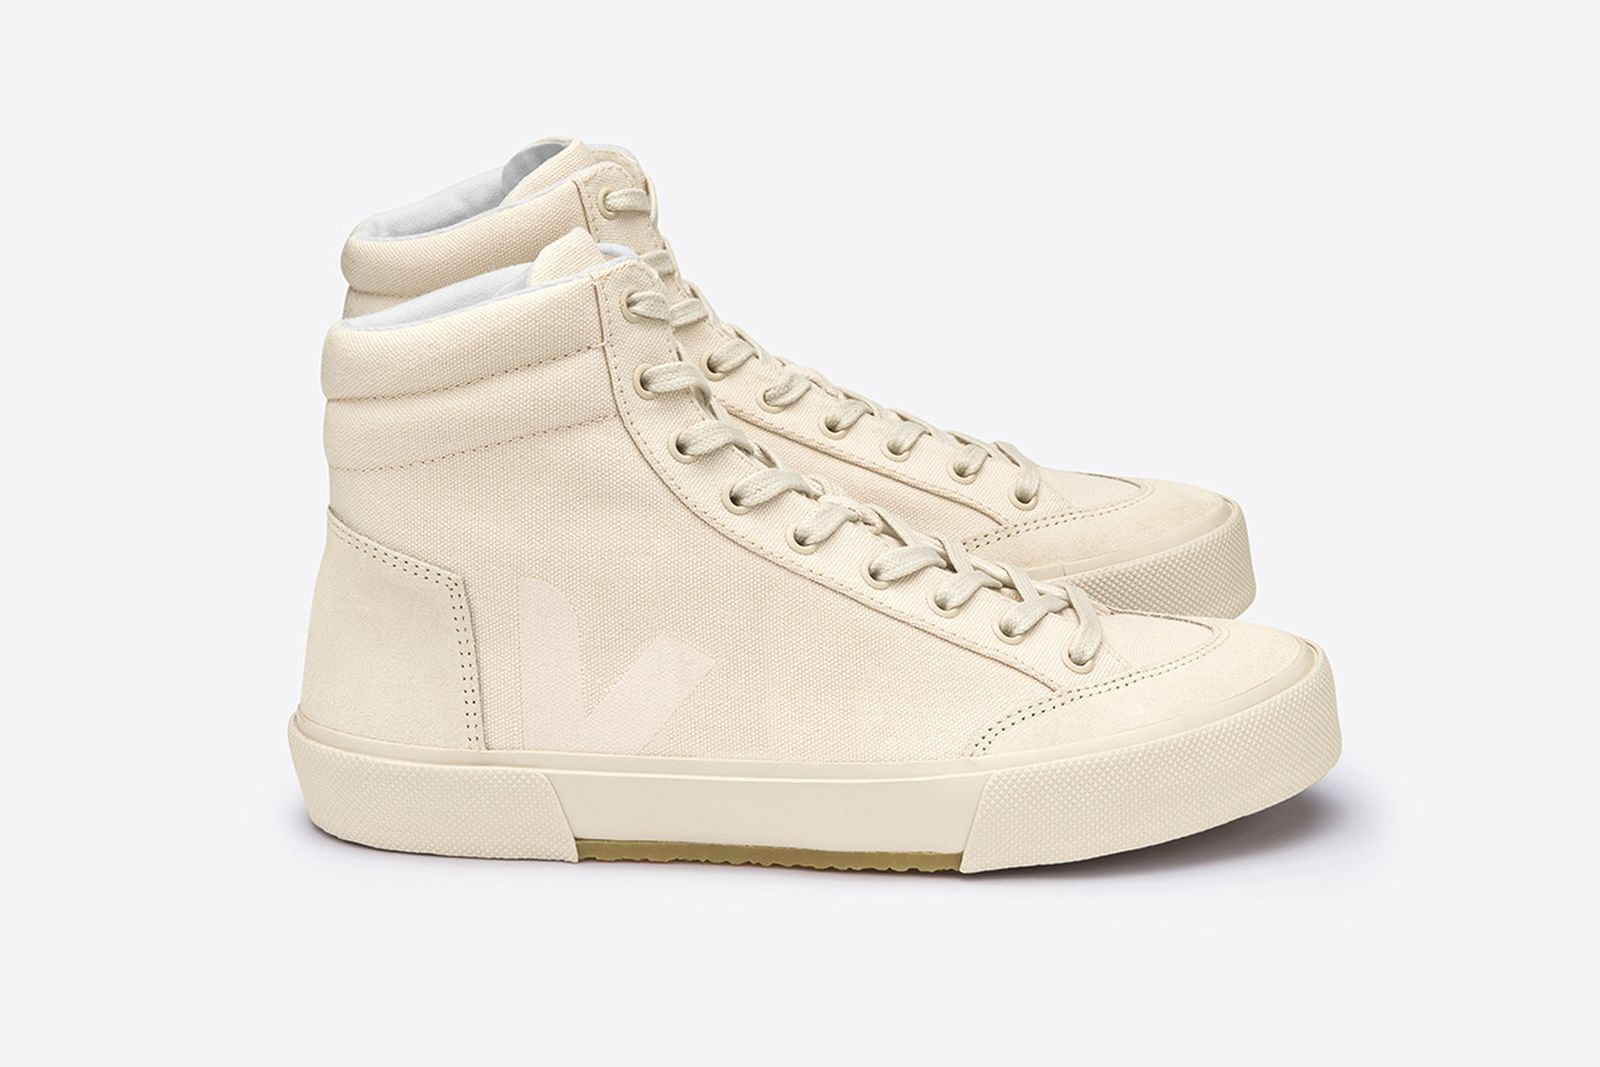 lemaire veja sneaker collaboration release date price